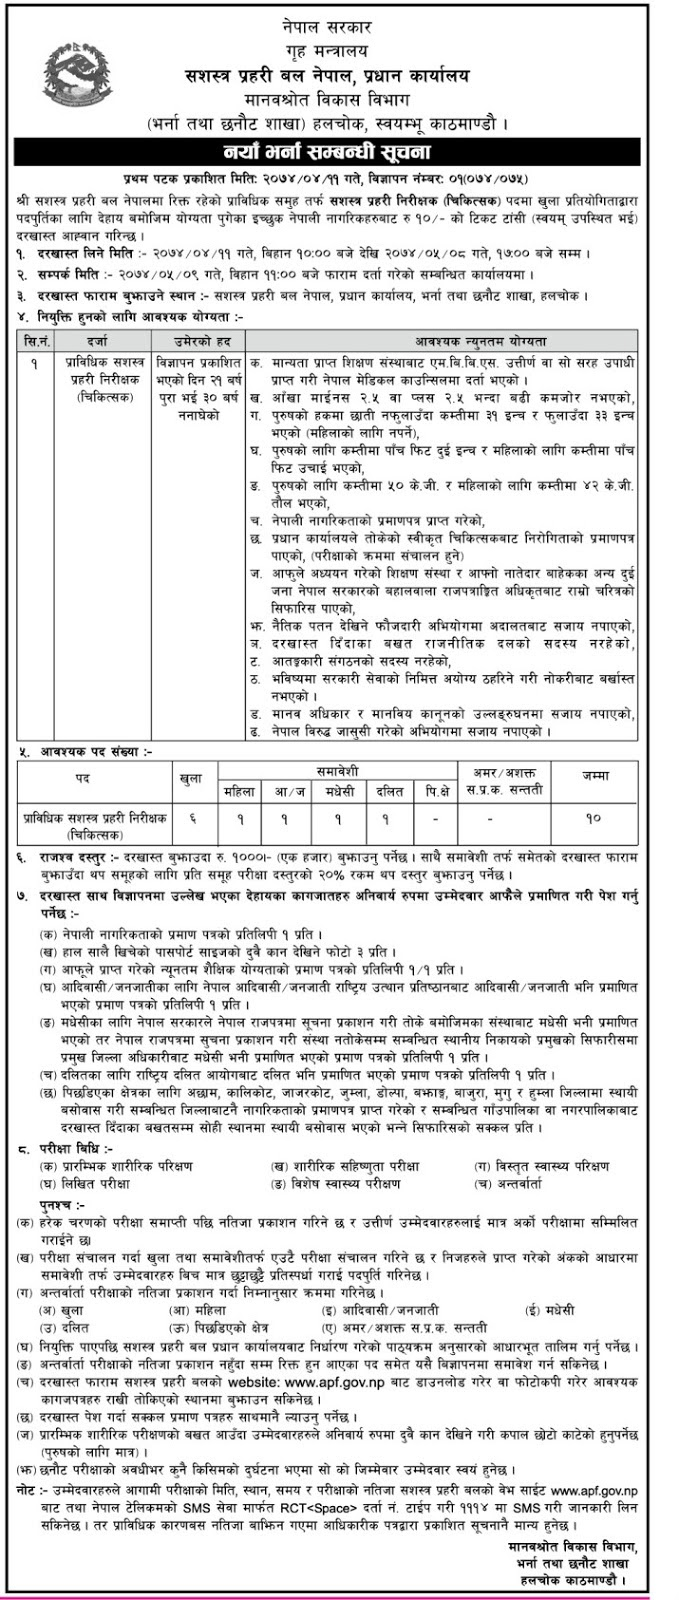 MBBS doctors Vacancy opened at Armed Police Force Nepal 2017